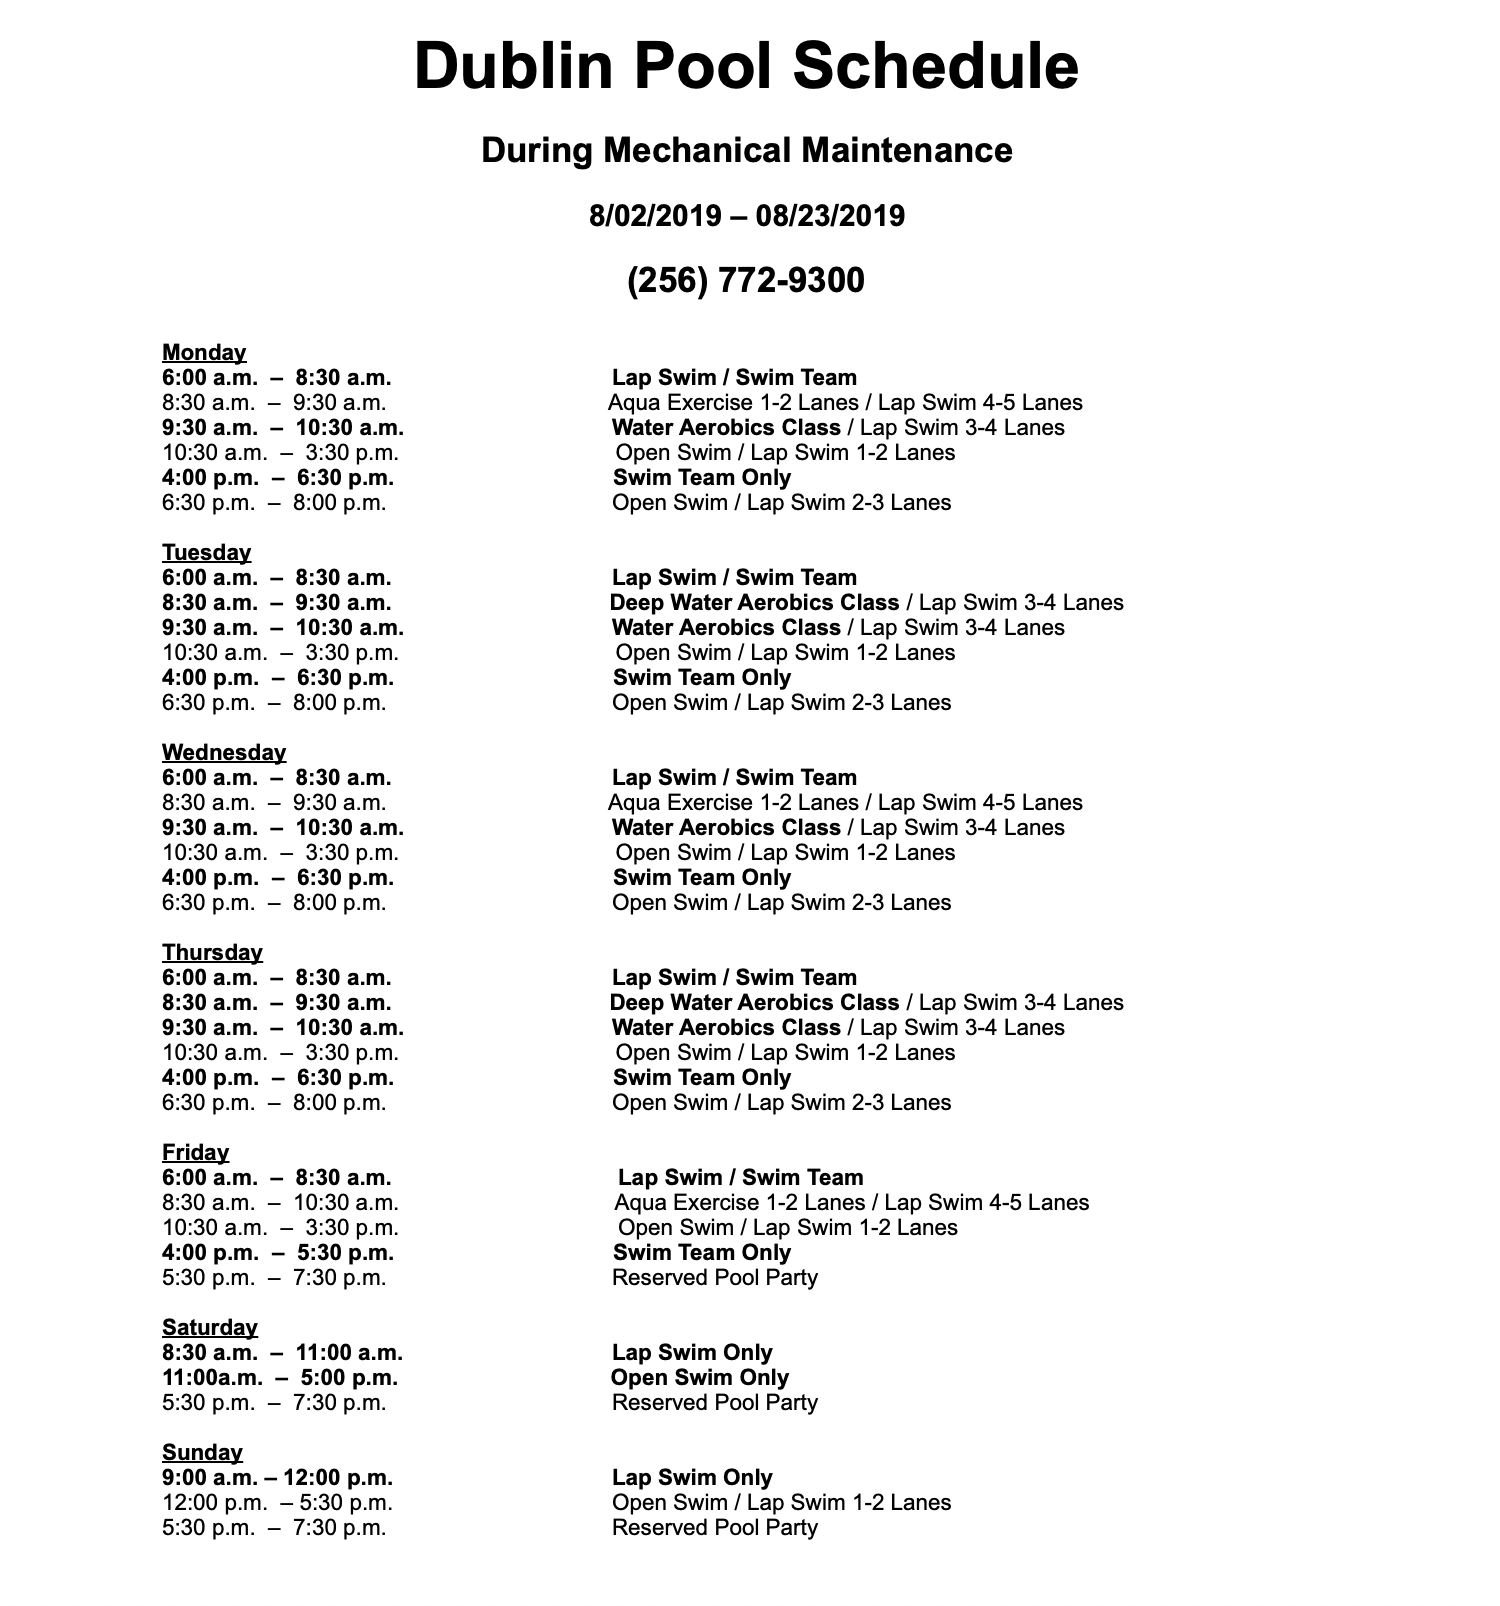 Maintenance Pool Schedule